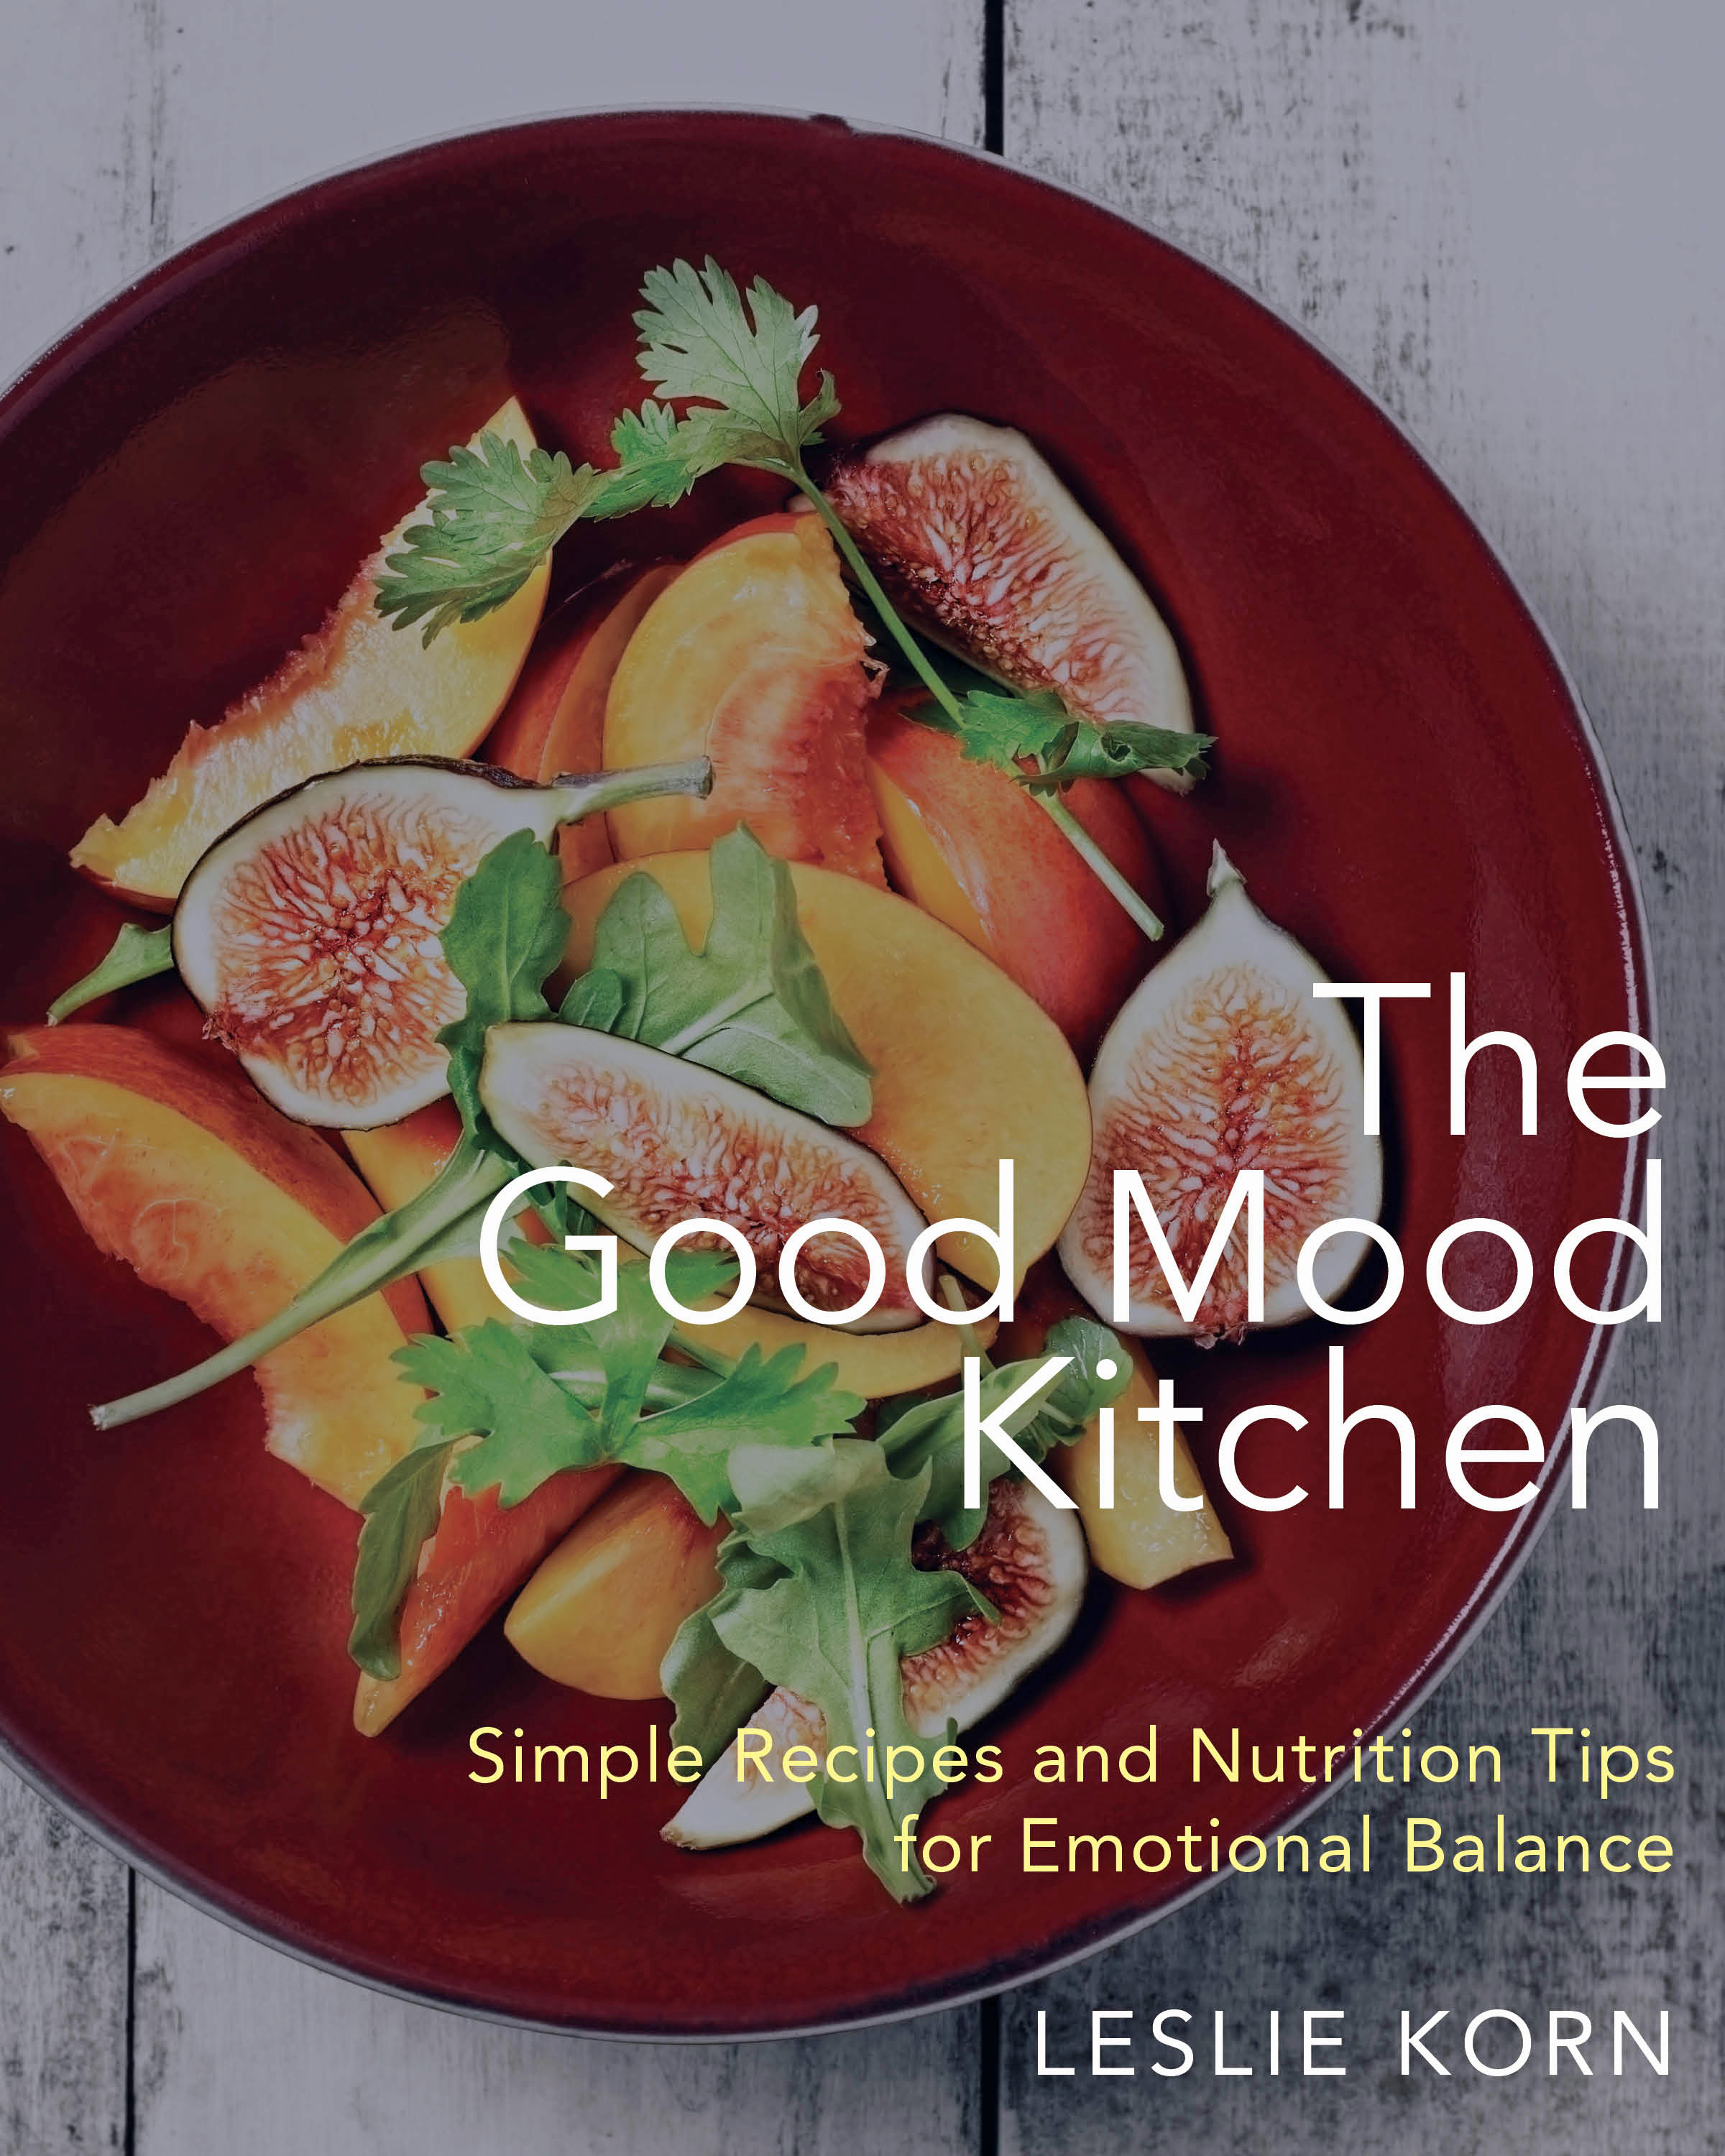 The Good Mood Kitchen is Dr. Leslie Korn's latest book.